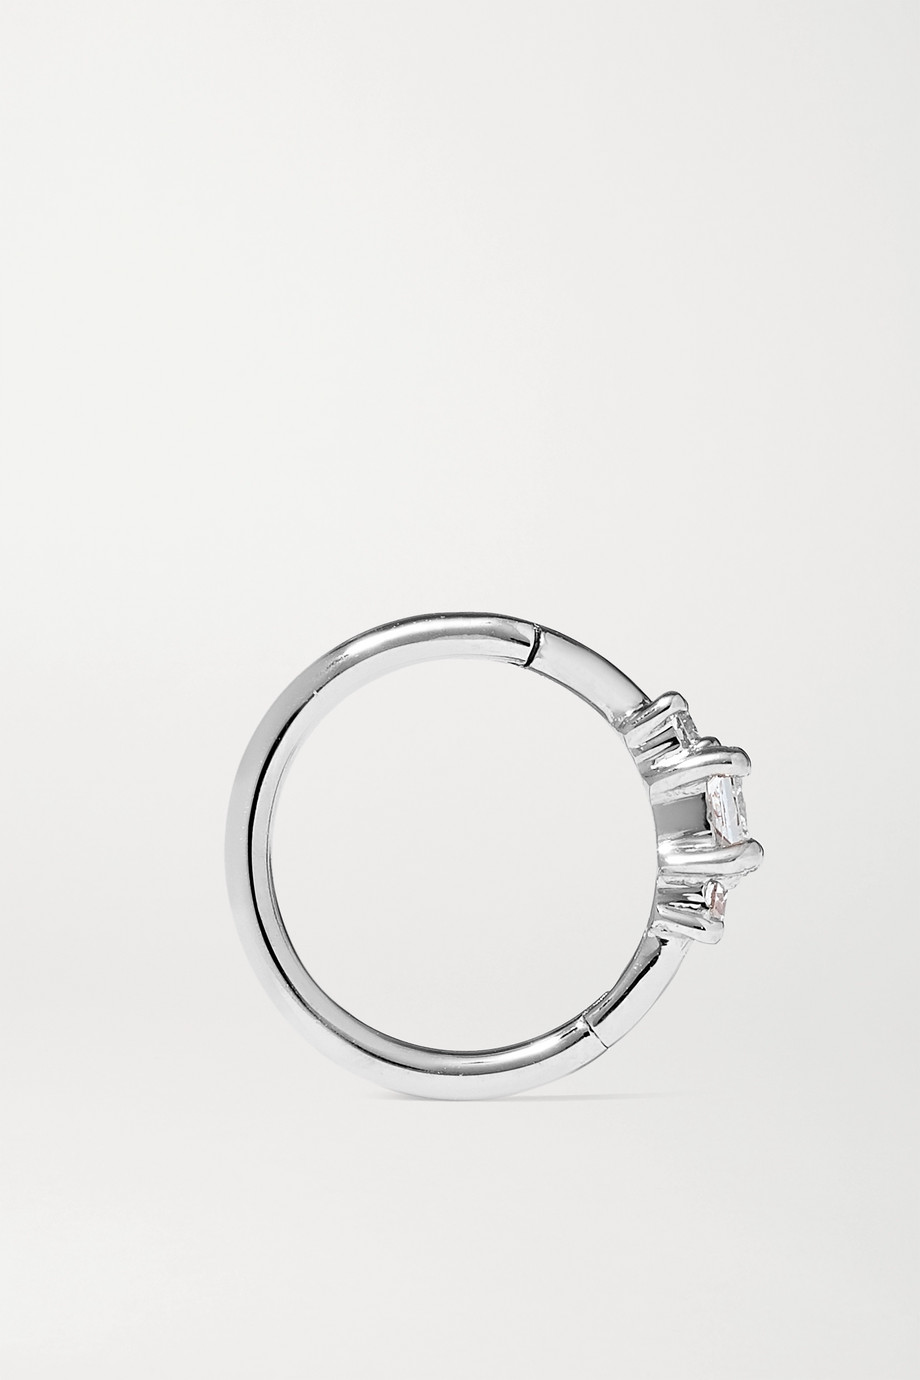 MARIA TASH 8mm 18-karat white gold diamond hoop earring